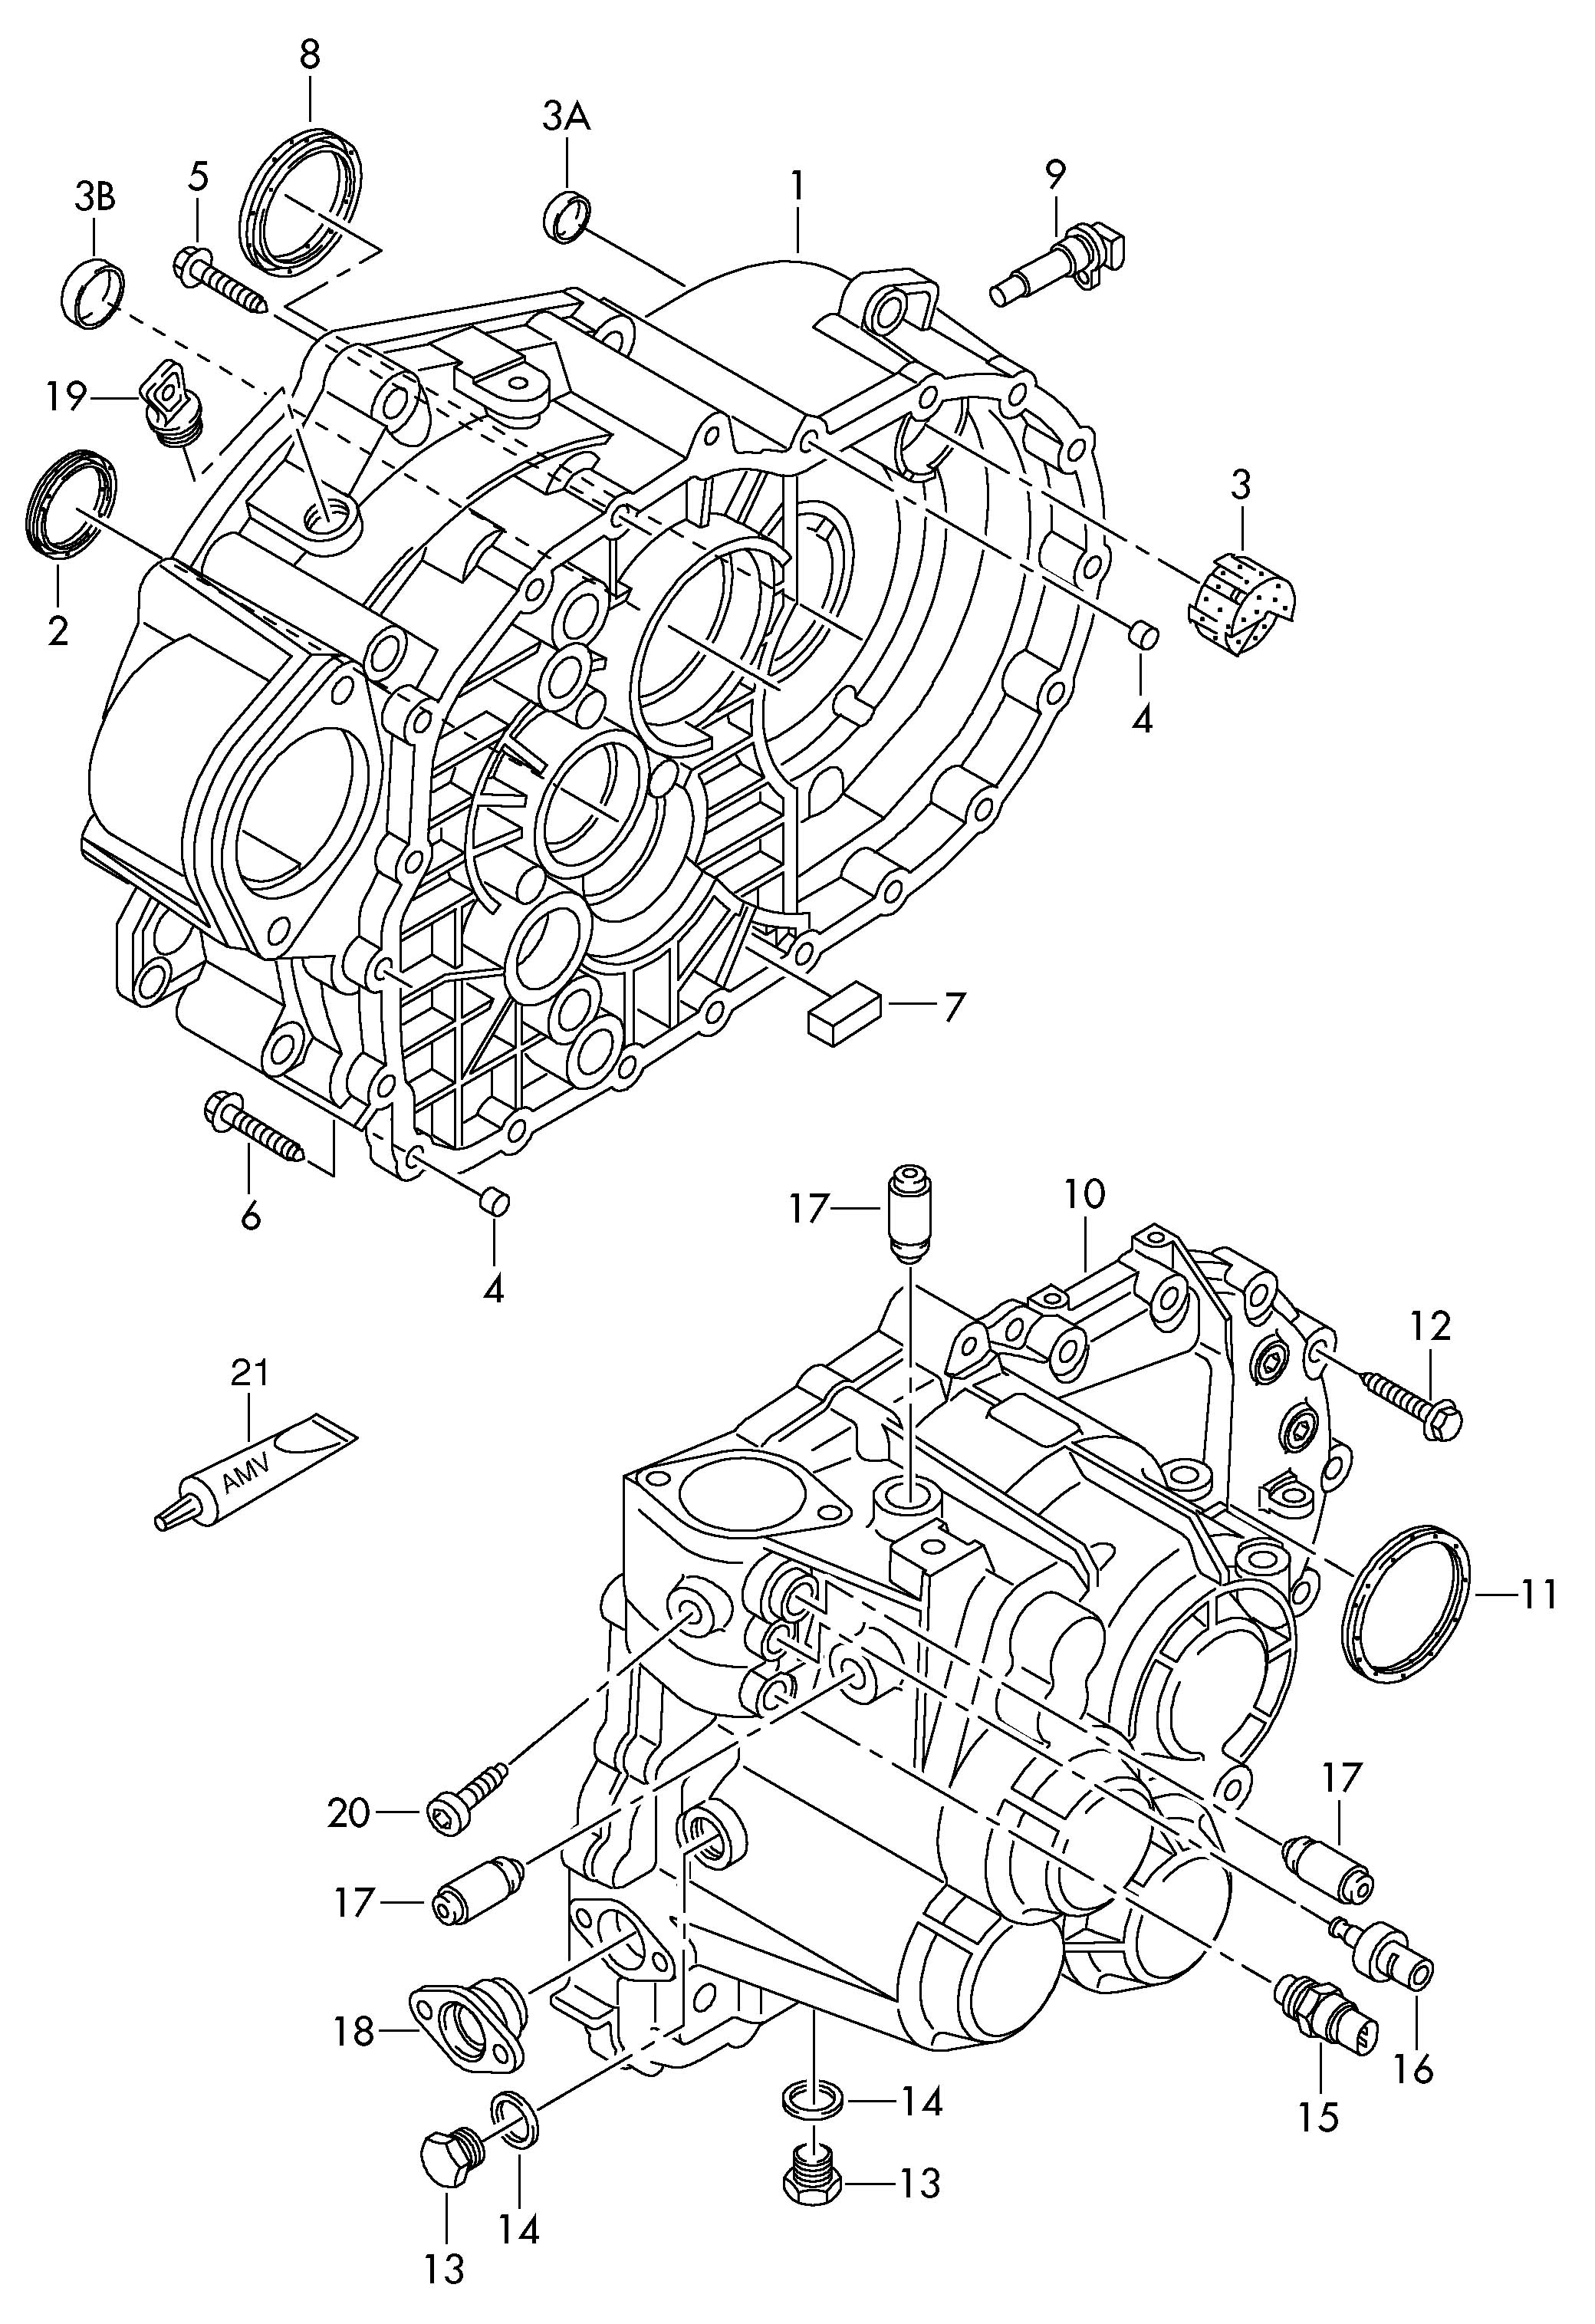 1999 vw beetle manual transmission diagram pictures to pin